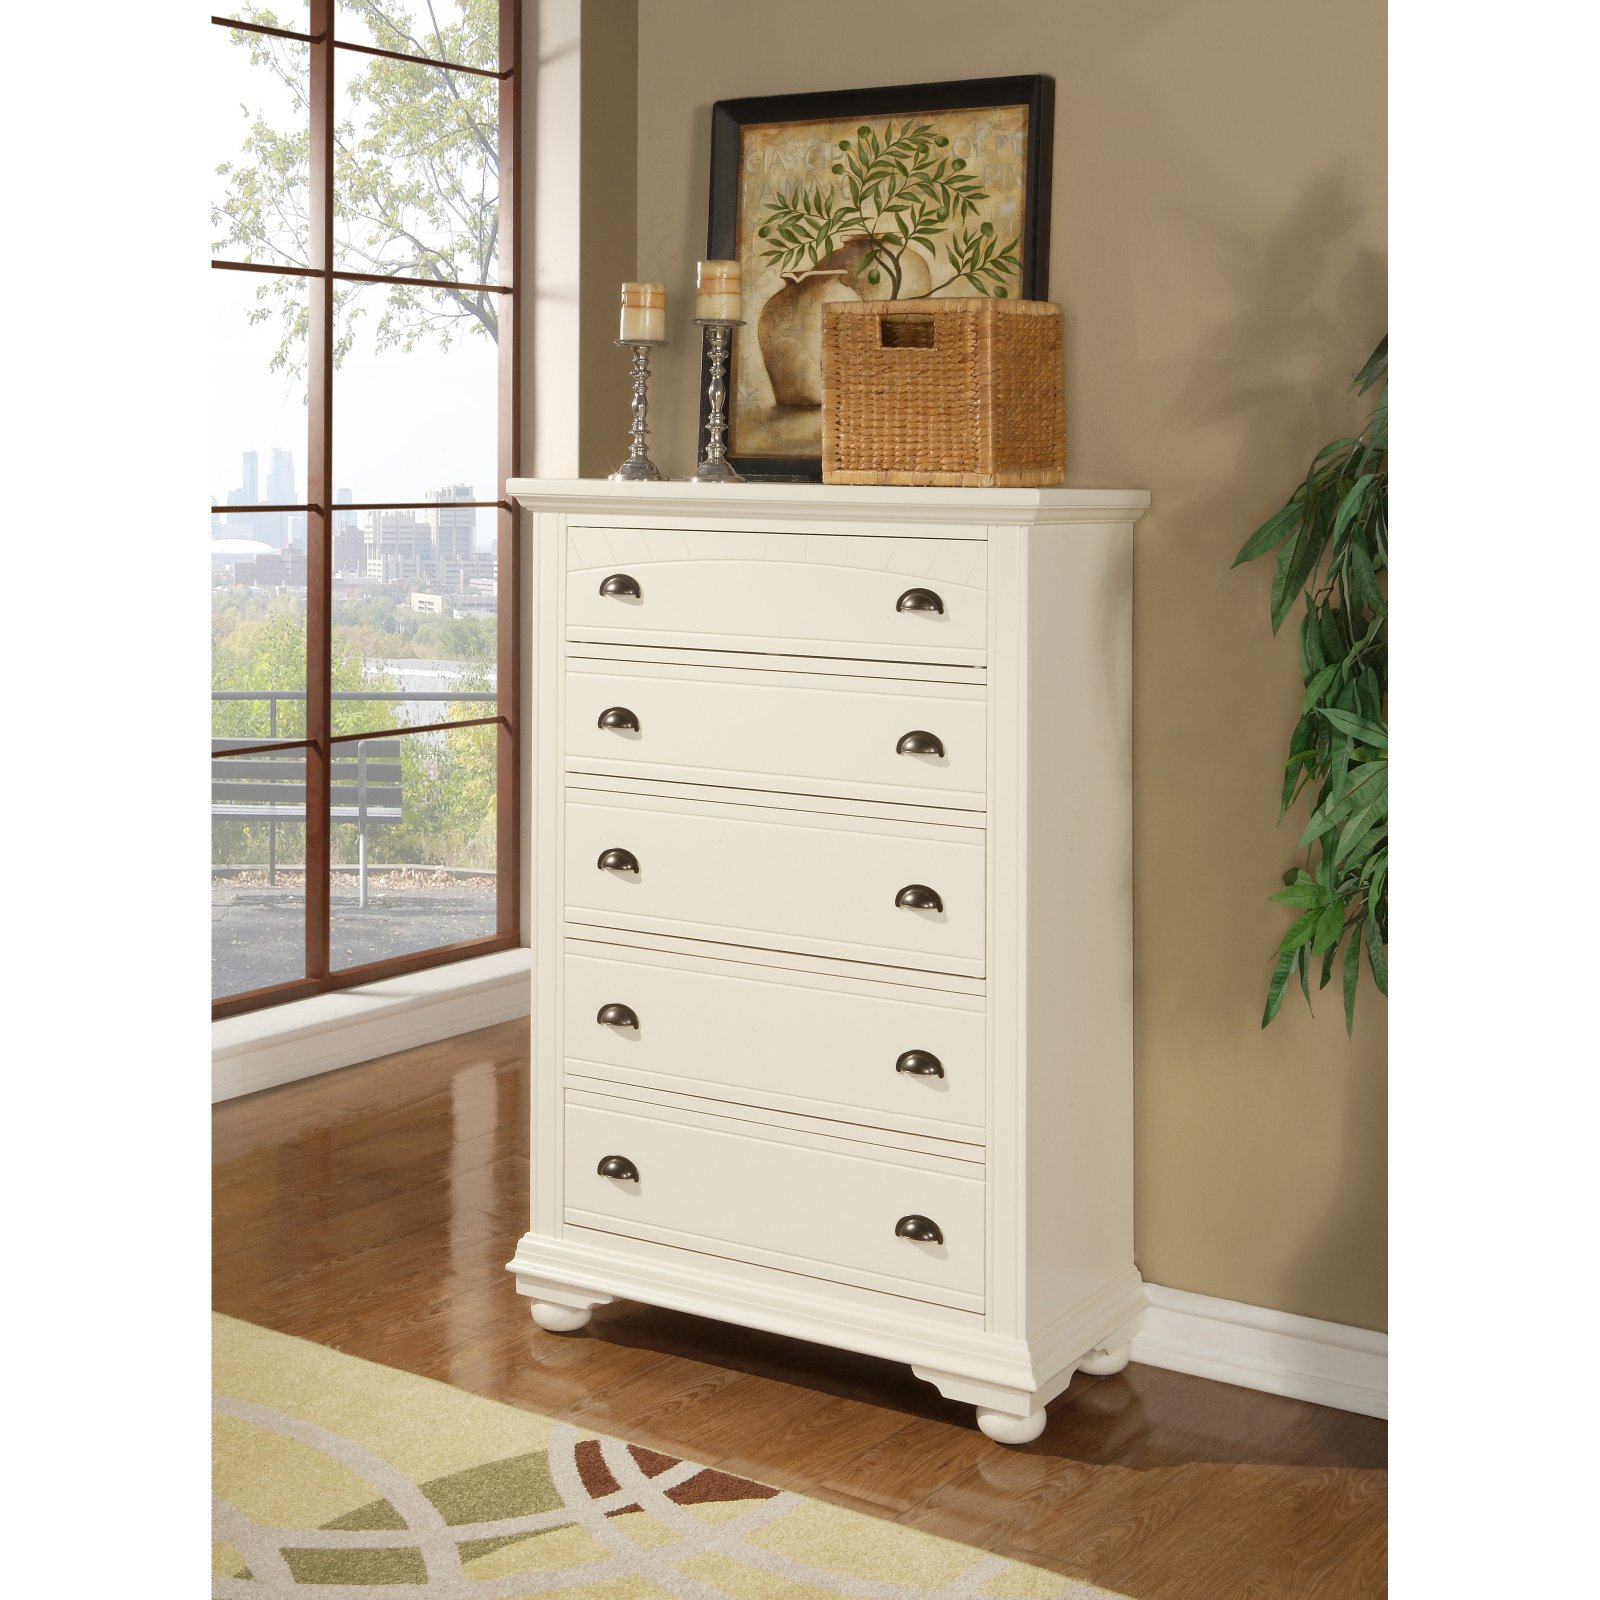 Picket House Furnishings Brook 5 Drawer Chest - Cottage White